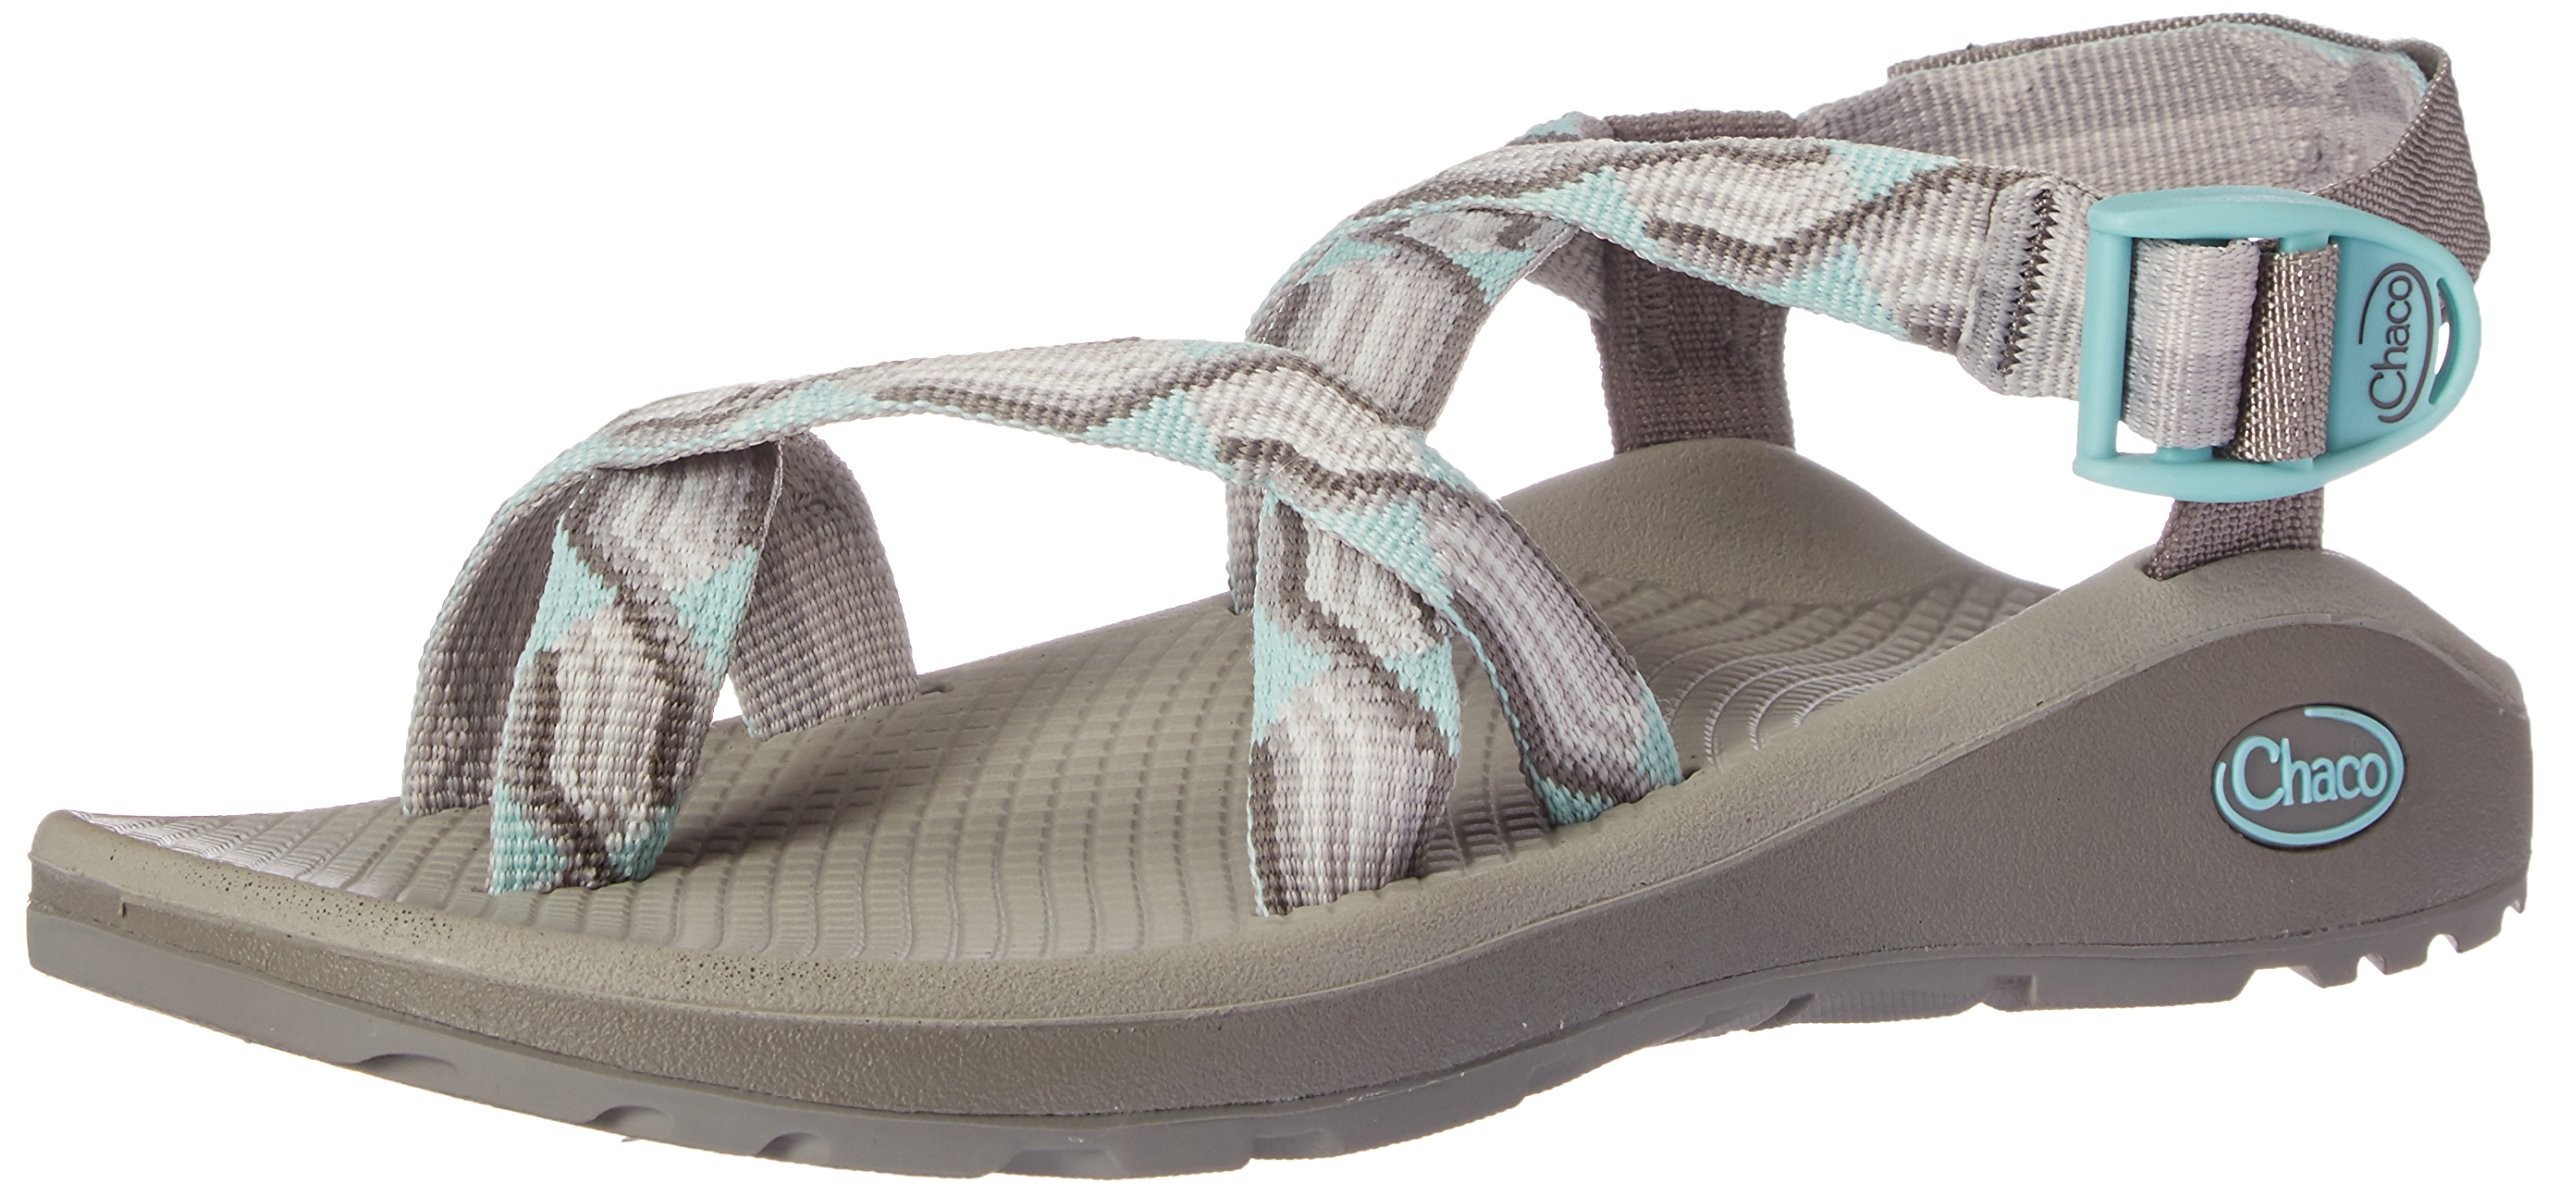 Chaco Women's Zcloud 2 Athletic Sandal, Candy Gray, 8 M US